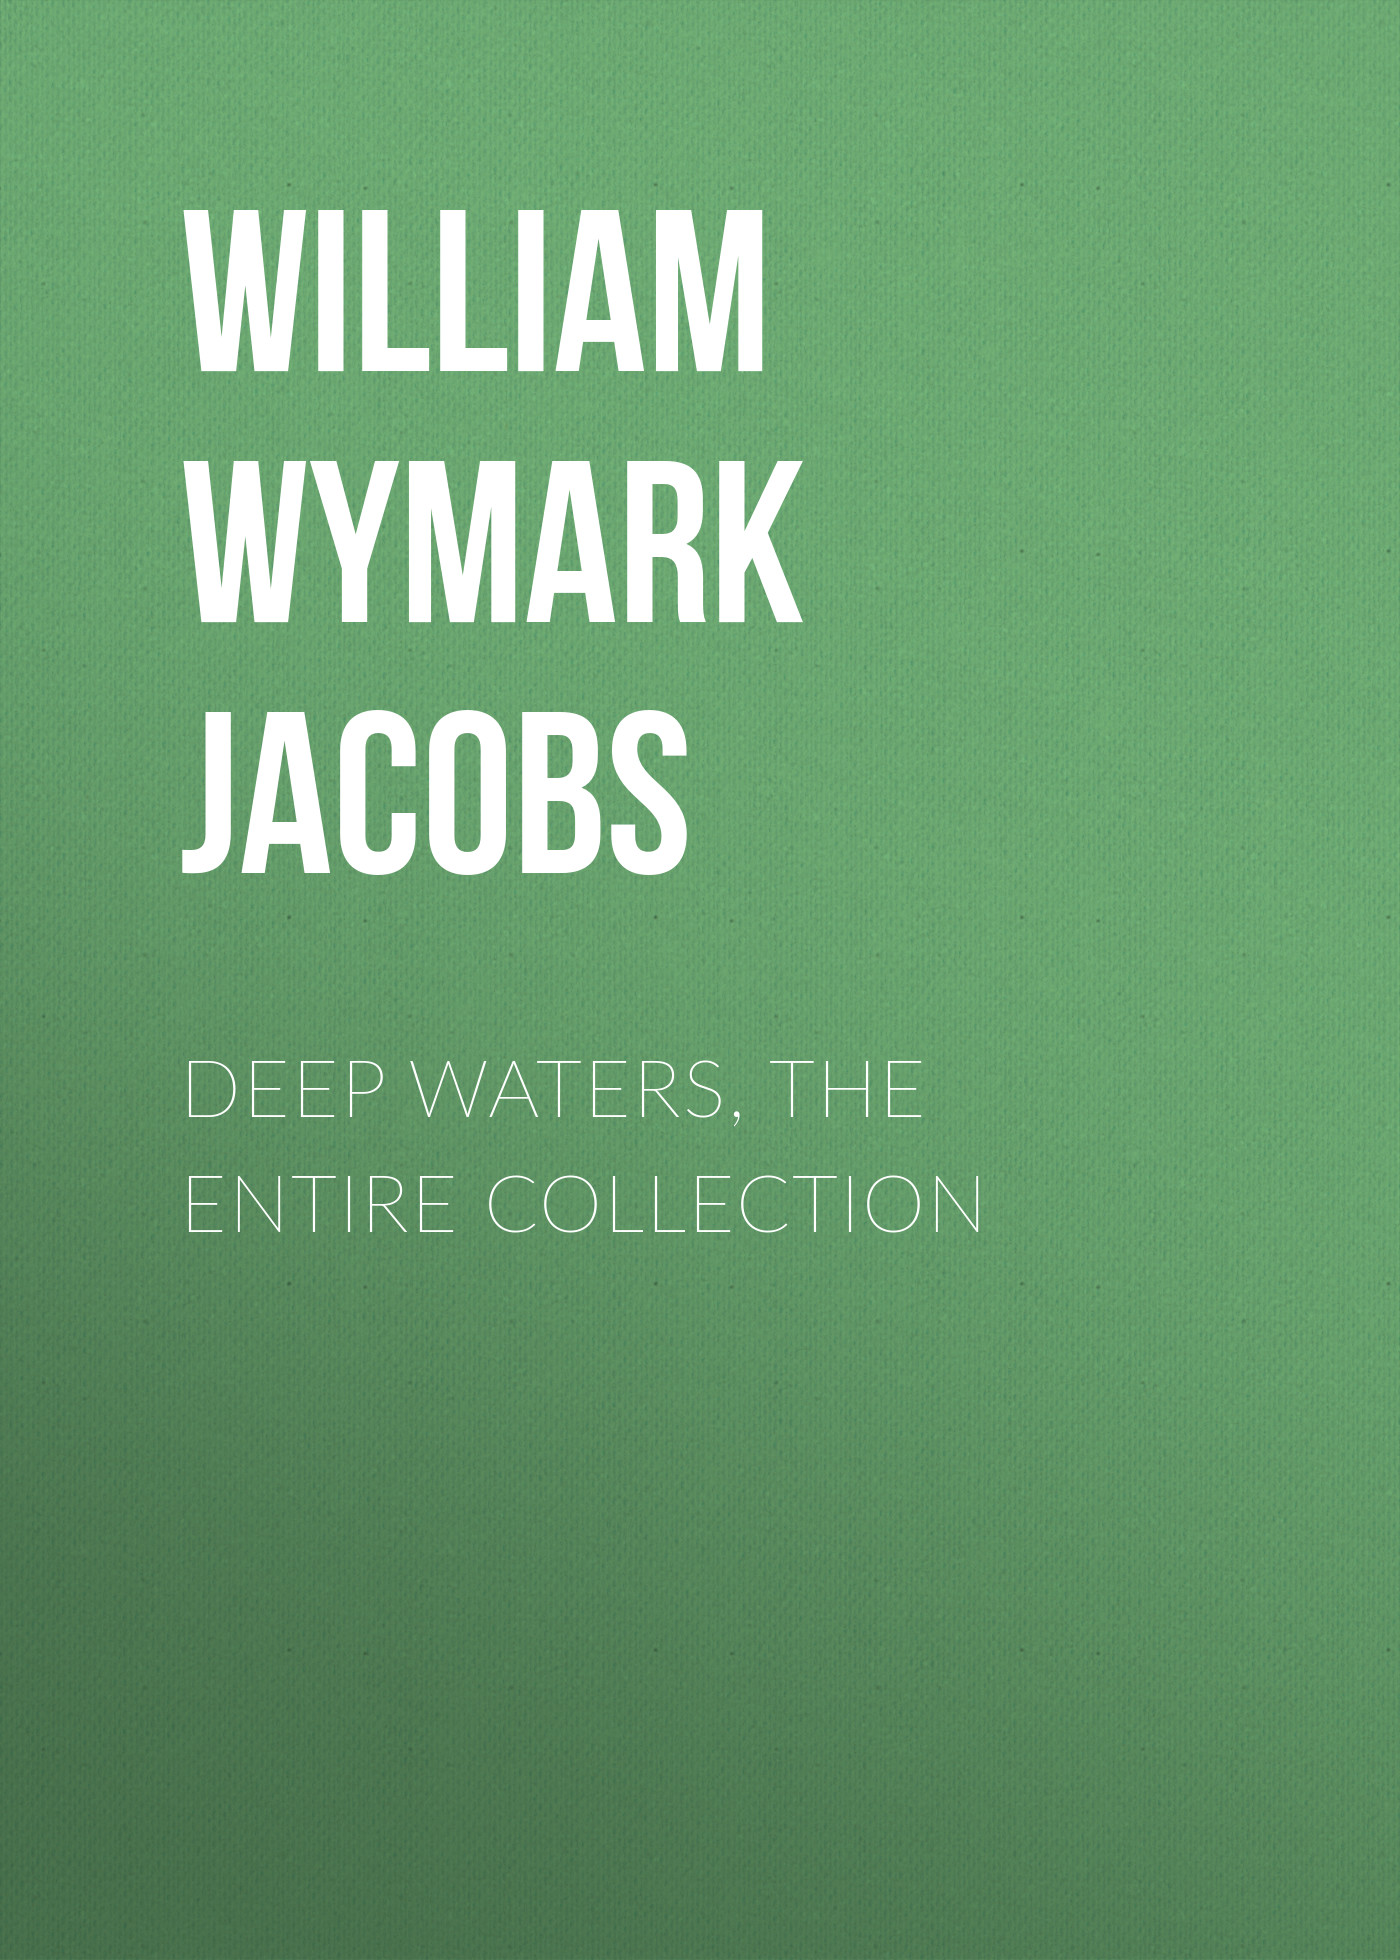 лучшая цена William Wymark Jacobs Deep Waters, the Entire Collection